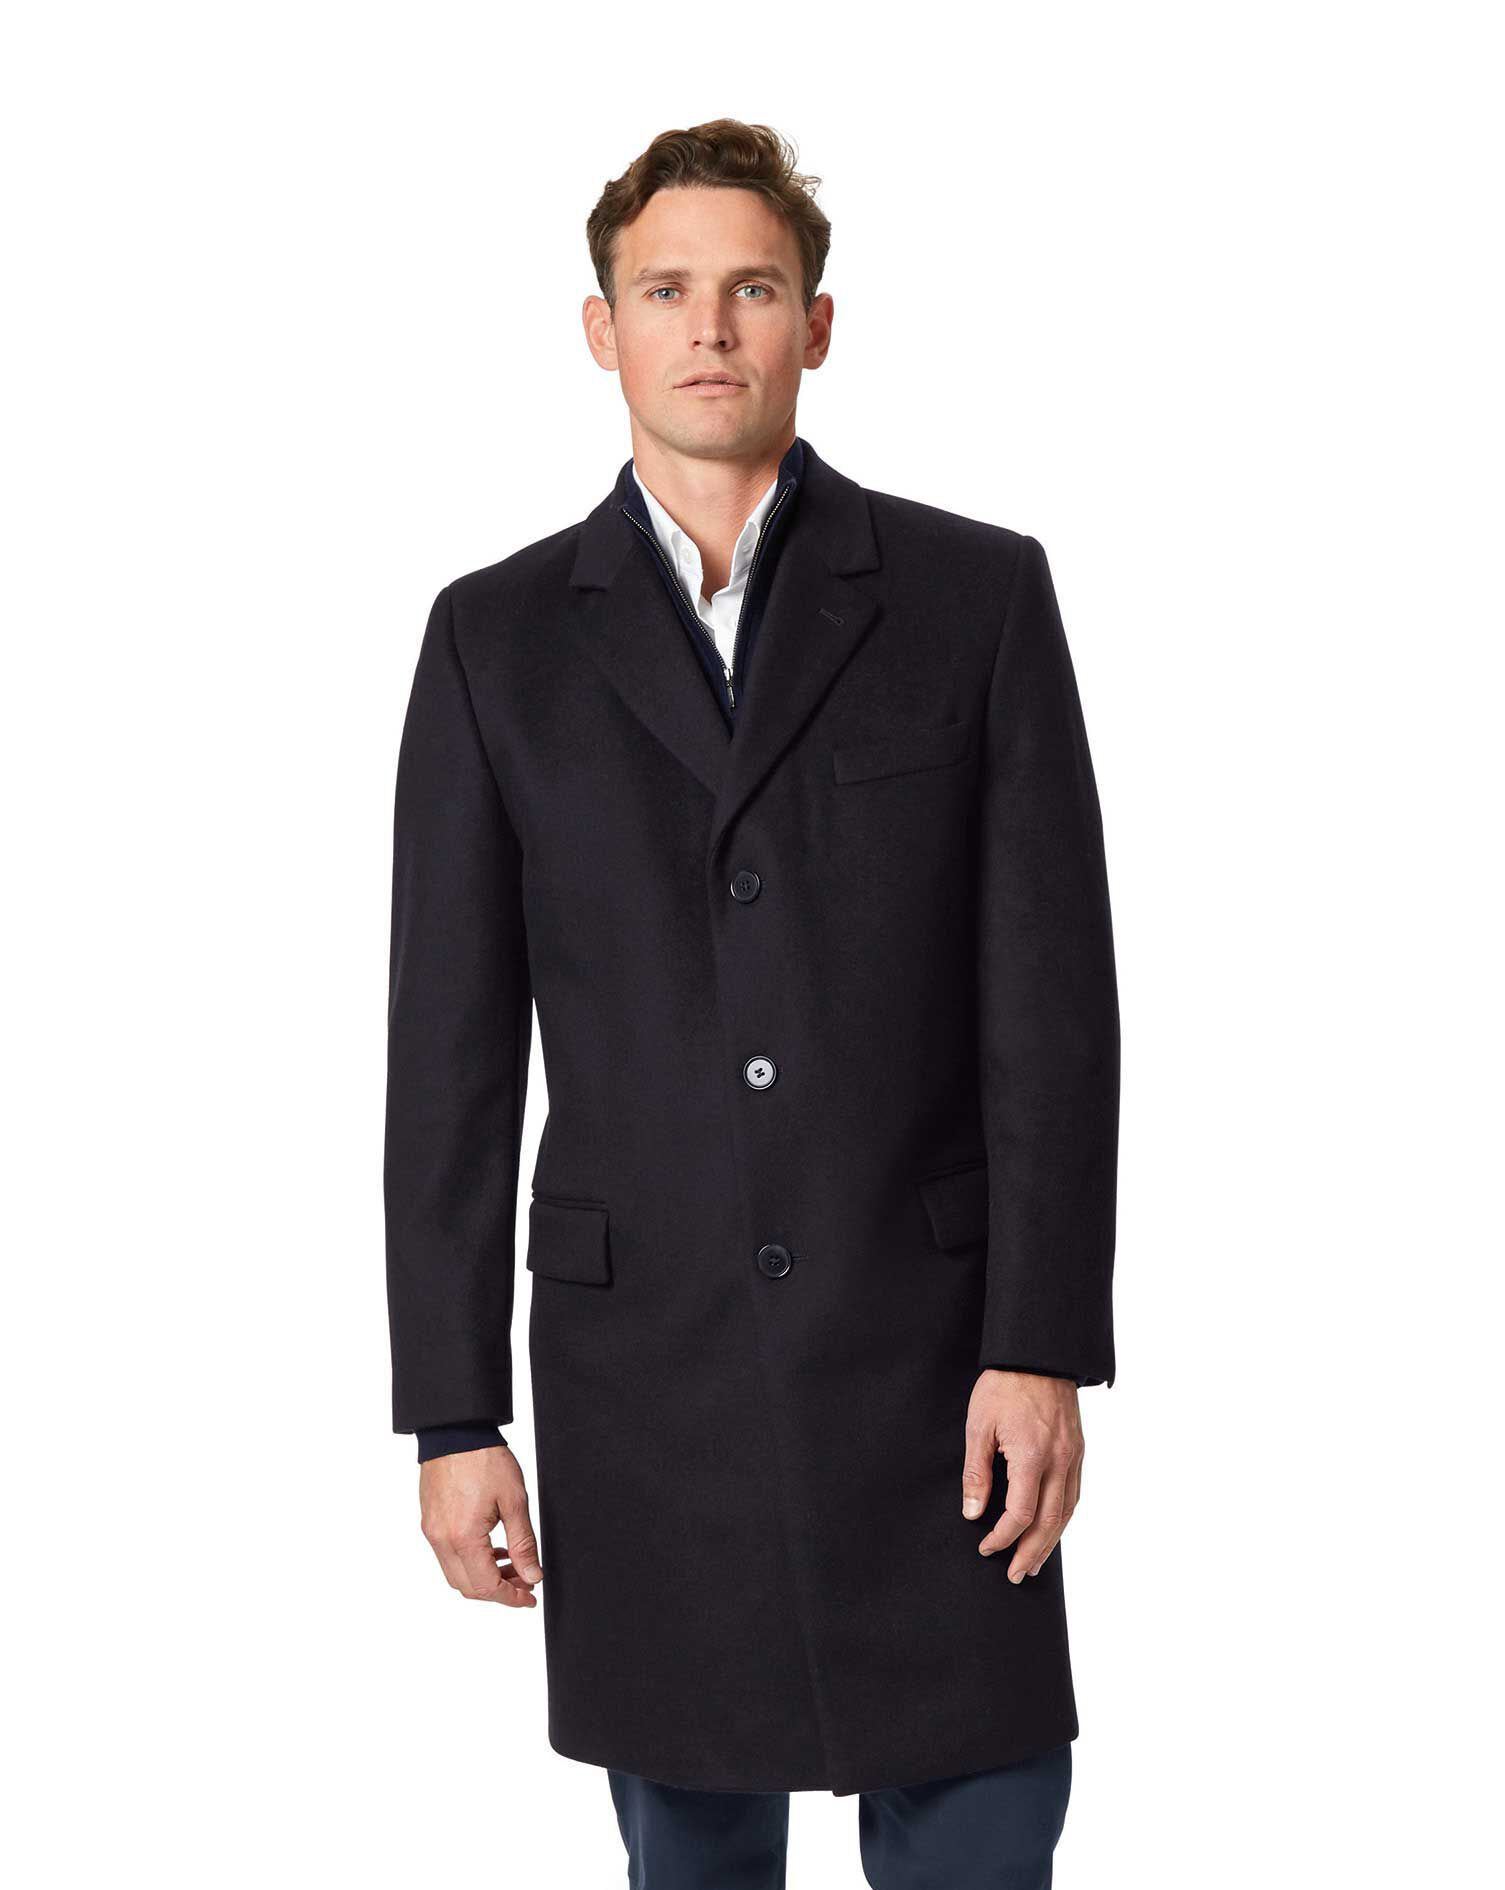 Navy Wool and Cashmere Overcoat Size 38 Long by Charles Tyrwhitt